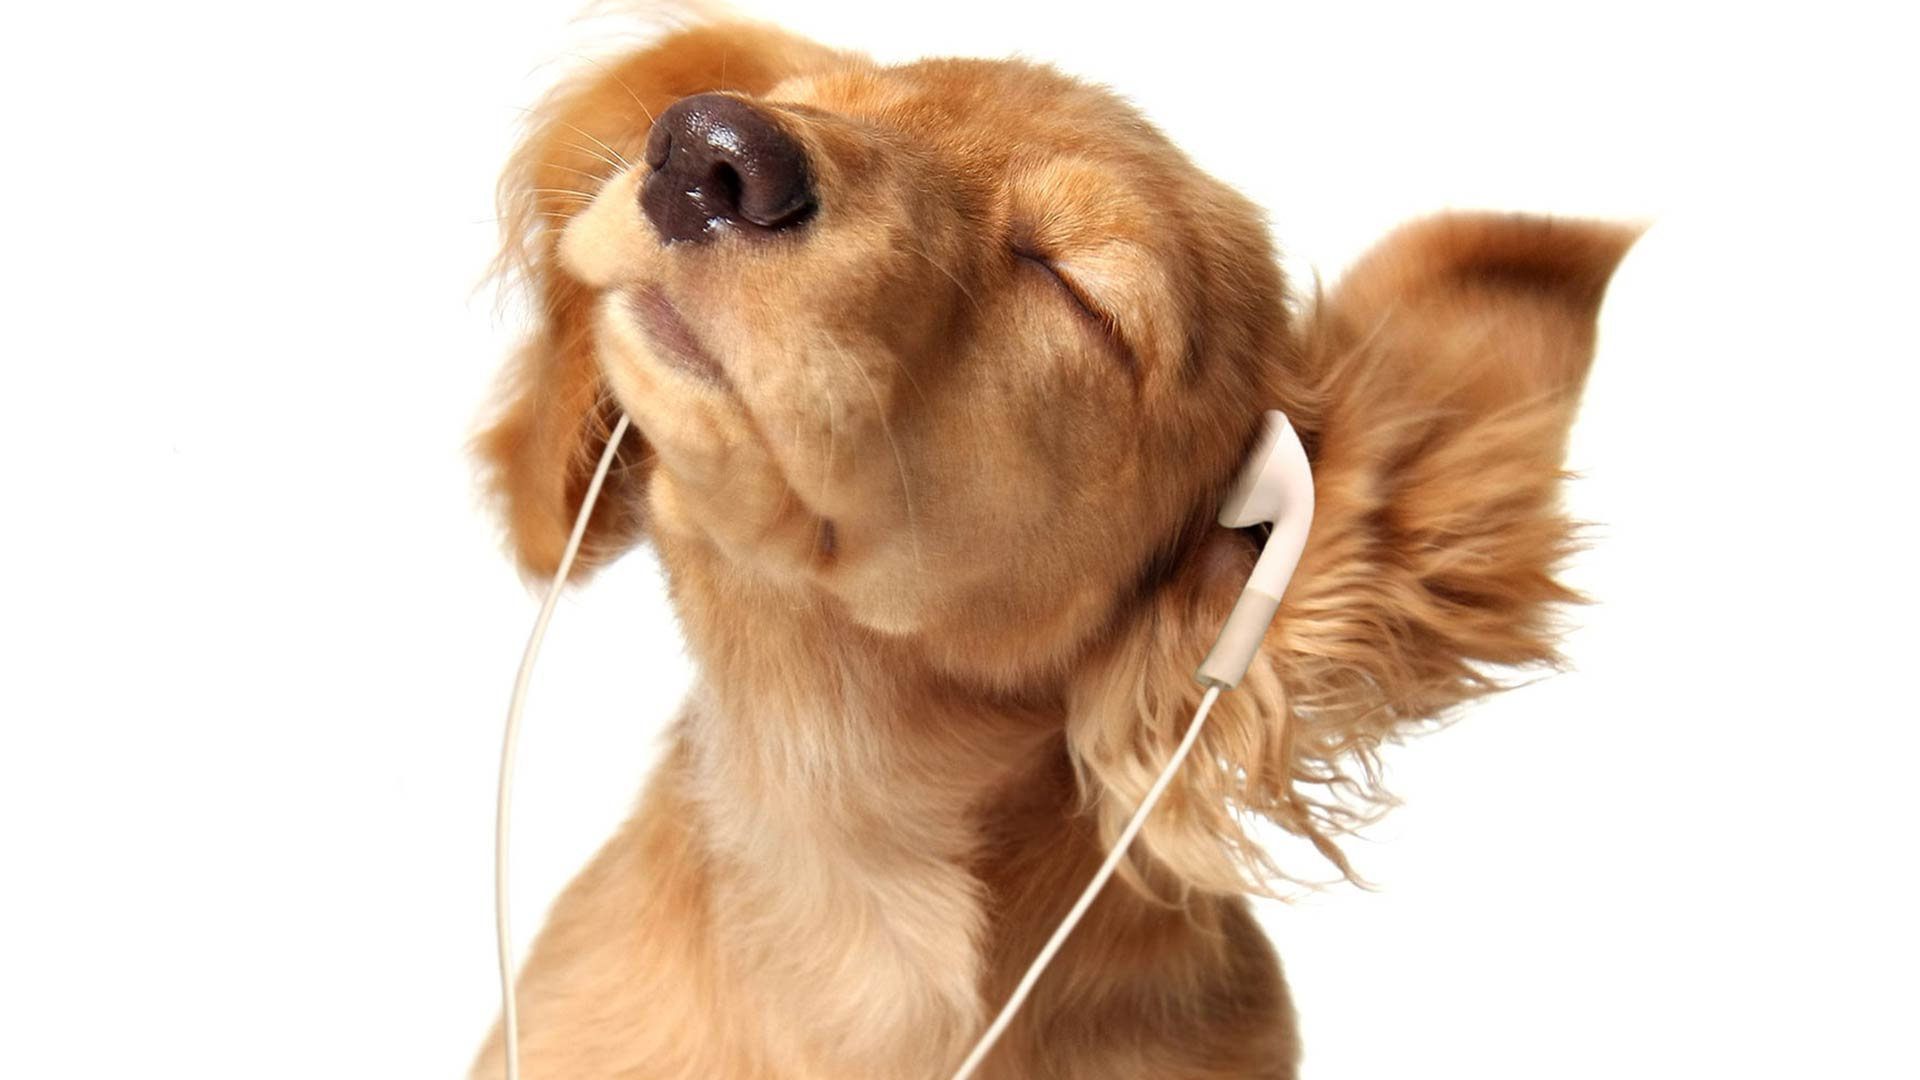 1-20-2020-SPOTIFY-REVEALS-PLAYLISTS-FOR-PETS